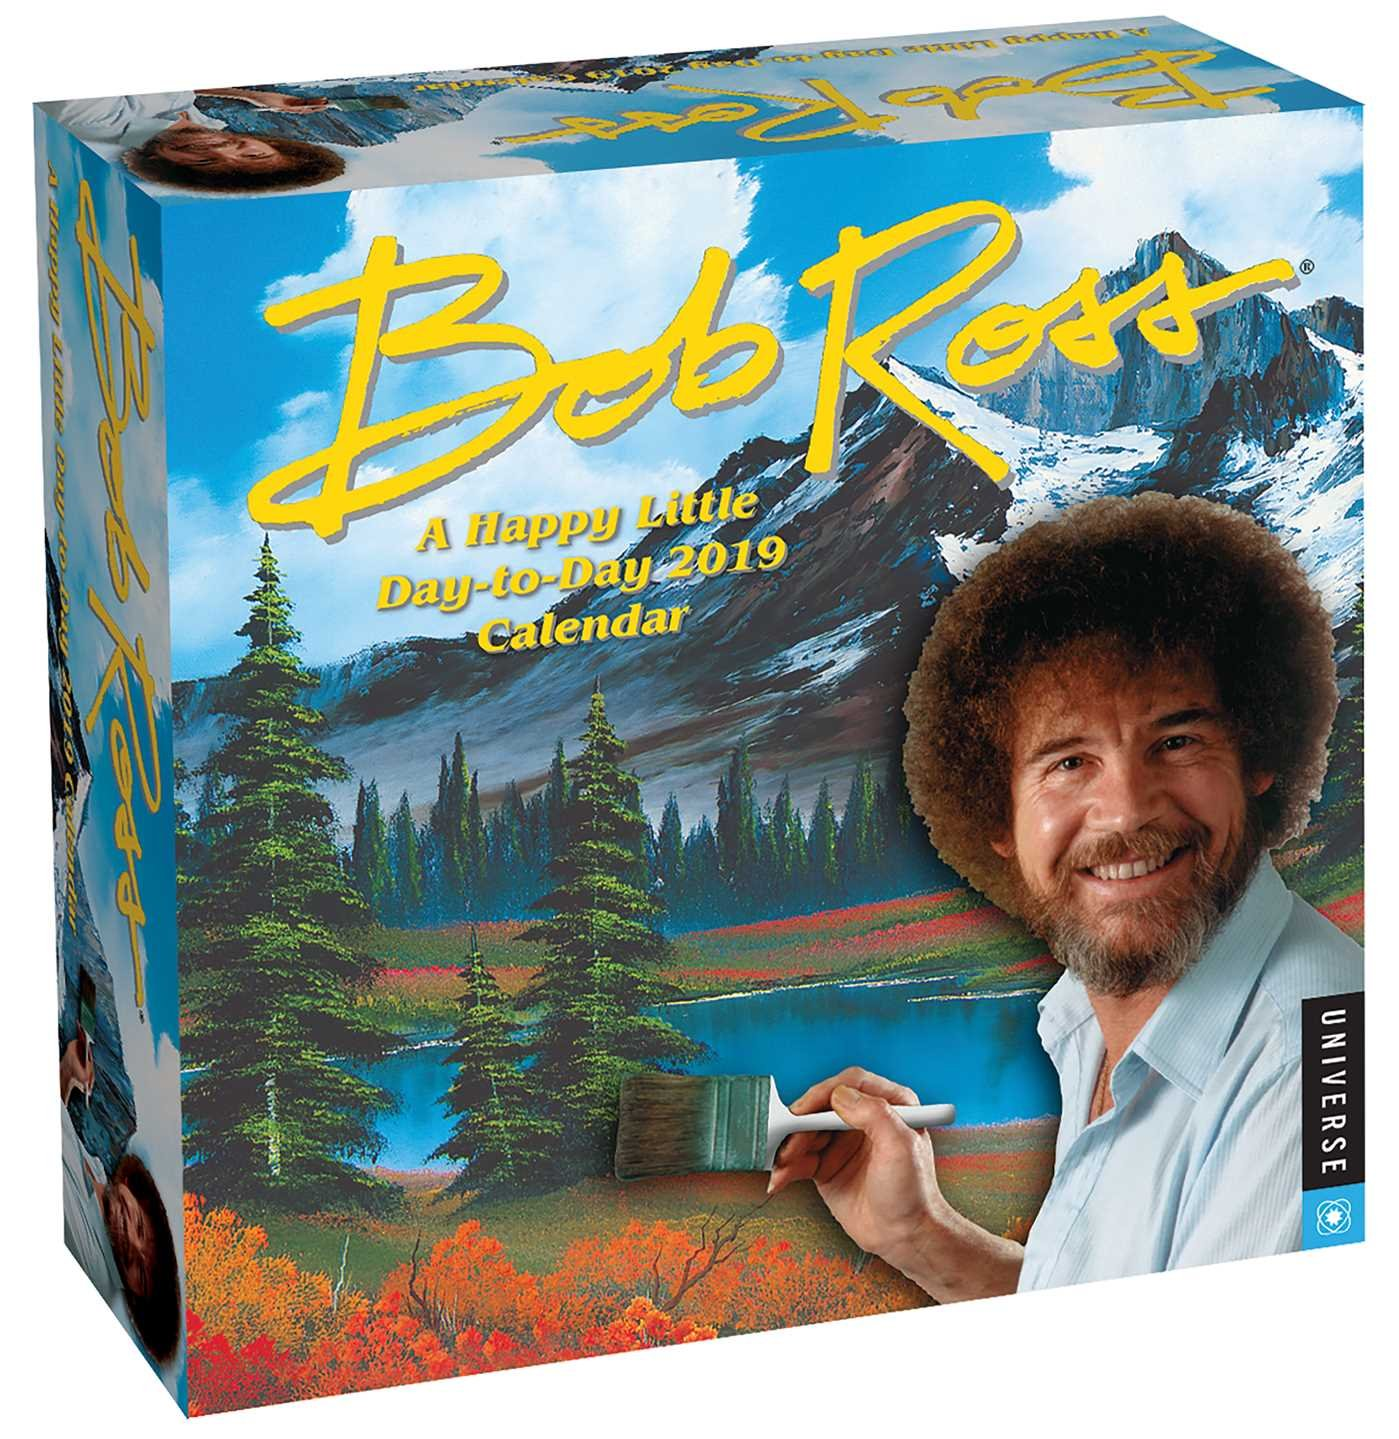 bob ross a happy little day to day 2020 calendar